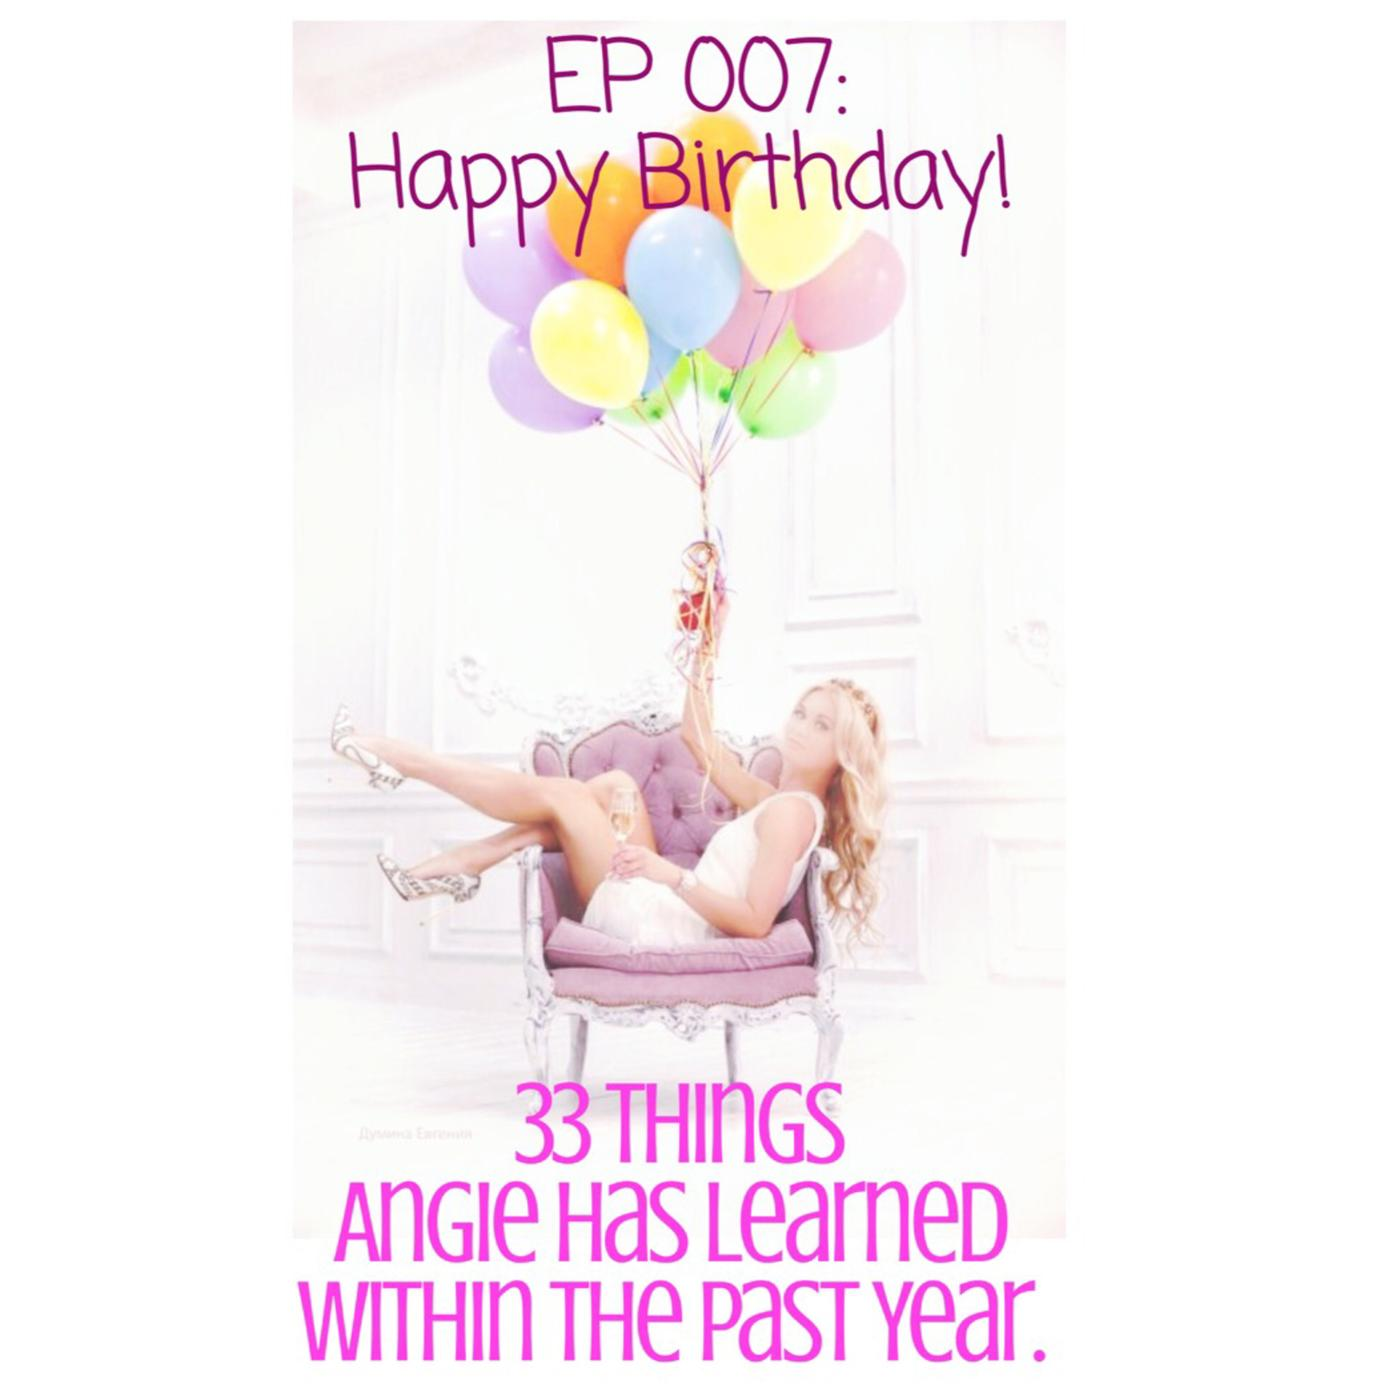 Ep 007 Happy Birthday 33 Things Angie Has Learned Within The